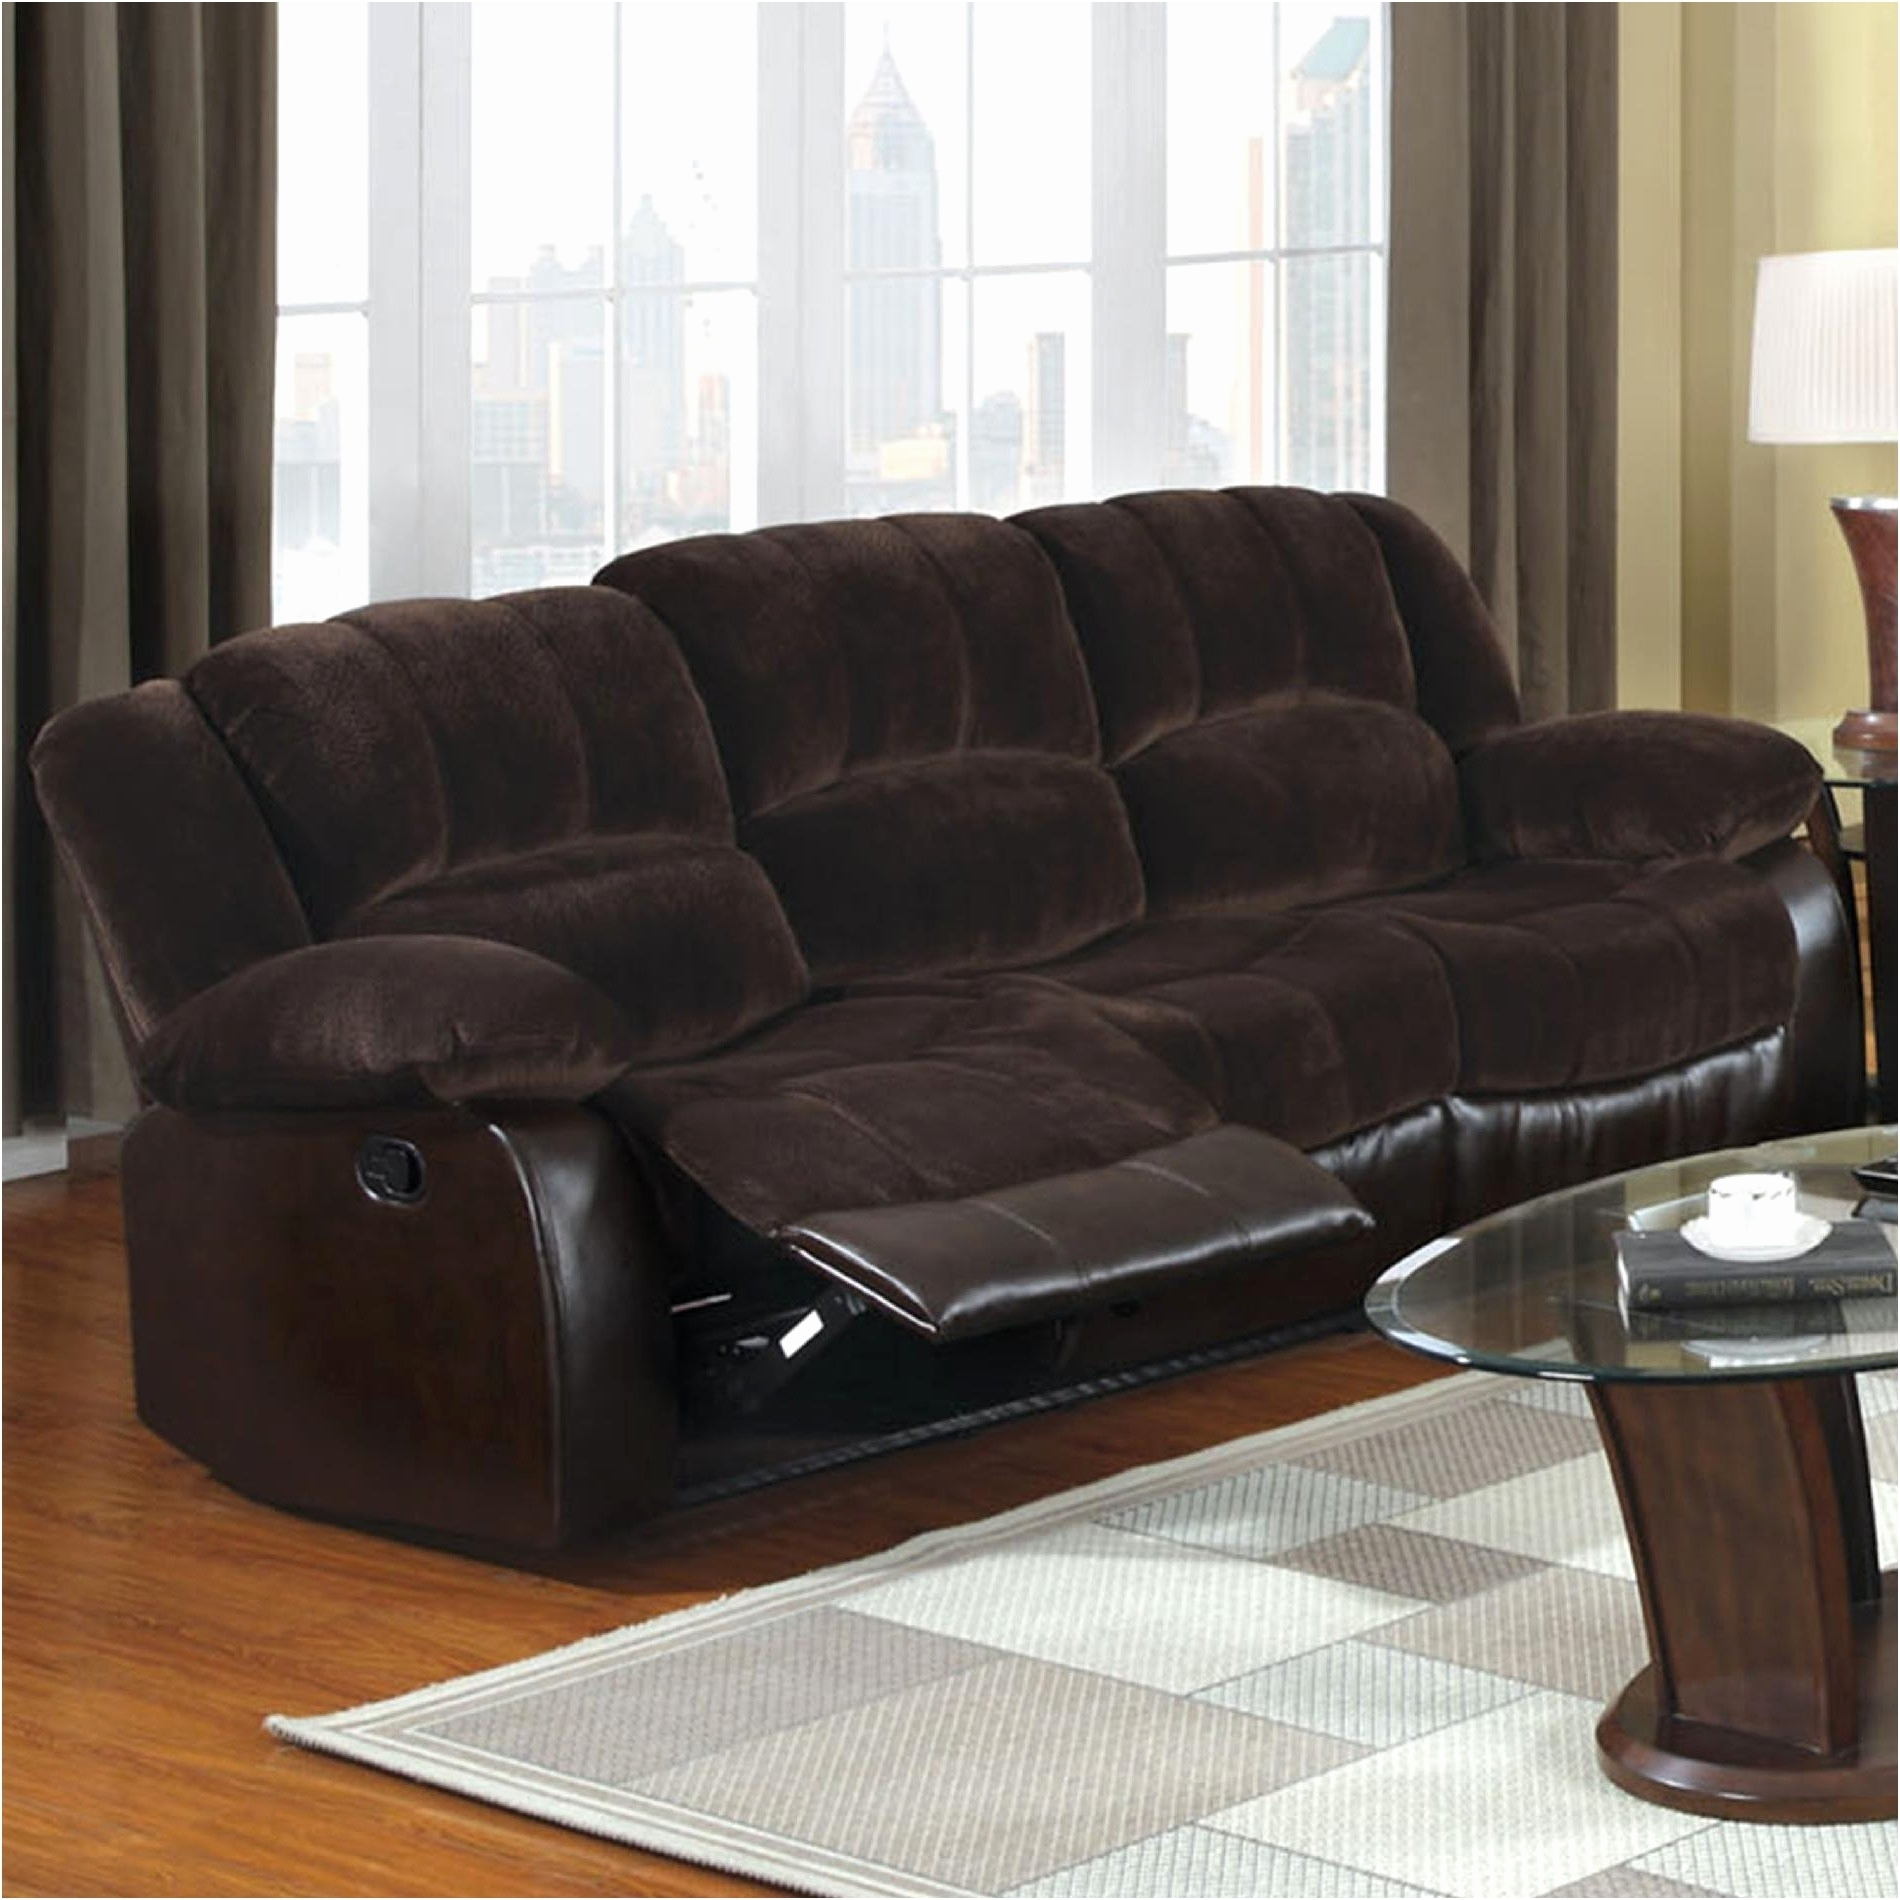 Fresh Sears Leather Sofa New – Intuisiblog For Sectional Sofas At Sears (View 3 of 15)